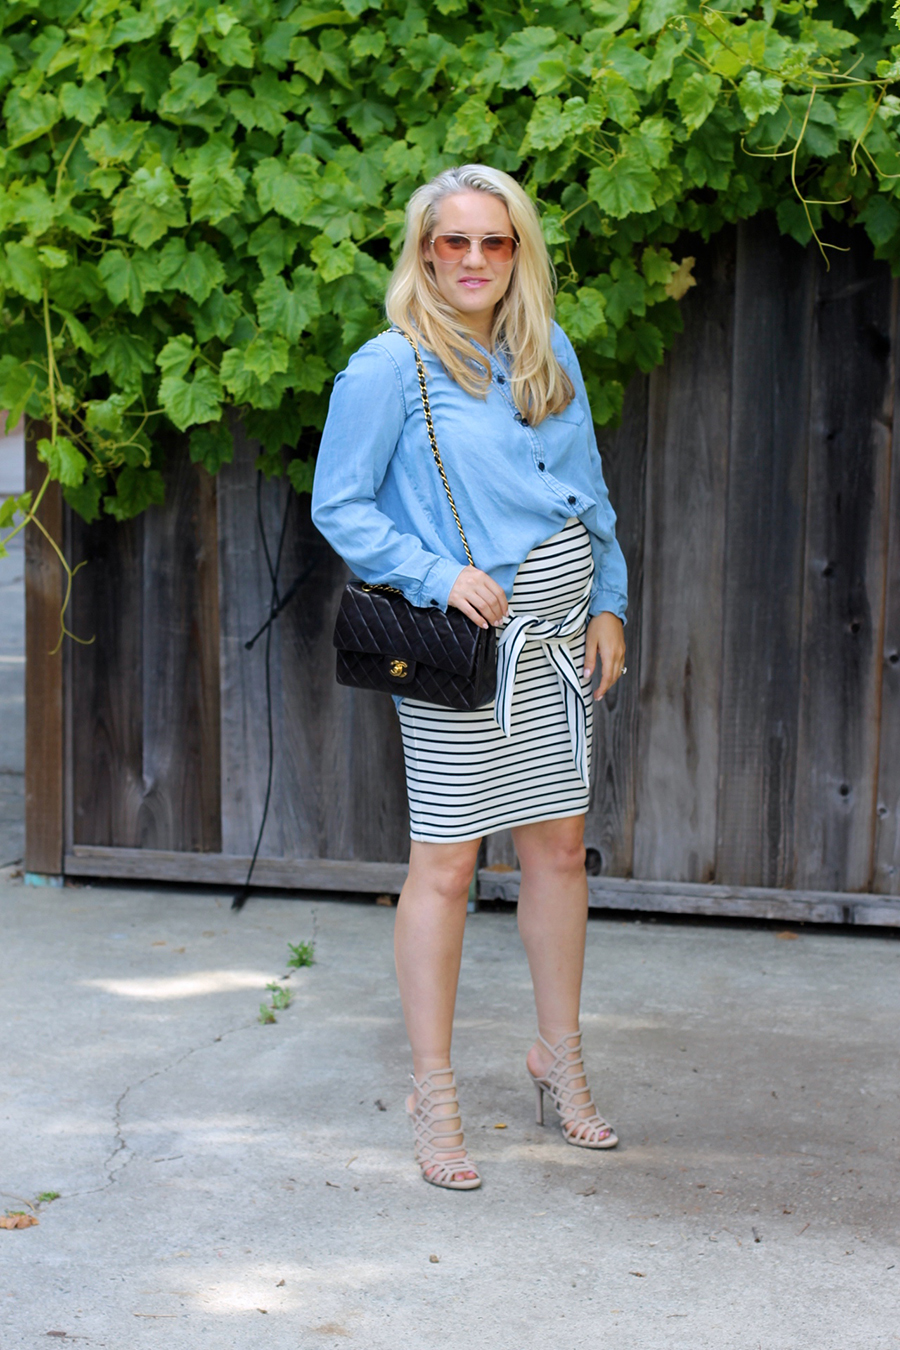 Kingdom & State-Tie Front Skirt-Maternity Style-Pregnancy Style-Chambray Top-Target Style-Have Need Want 7